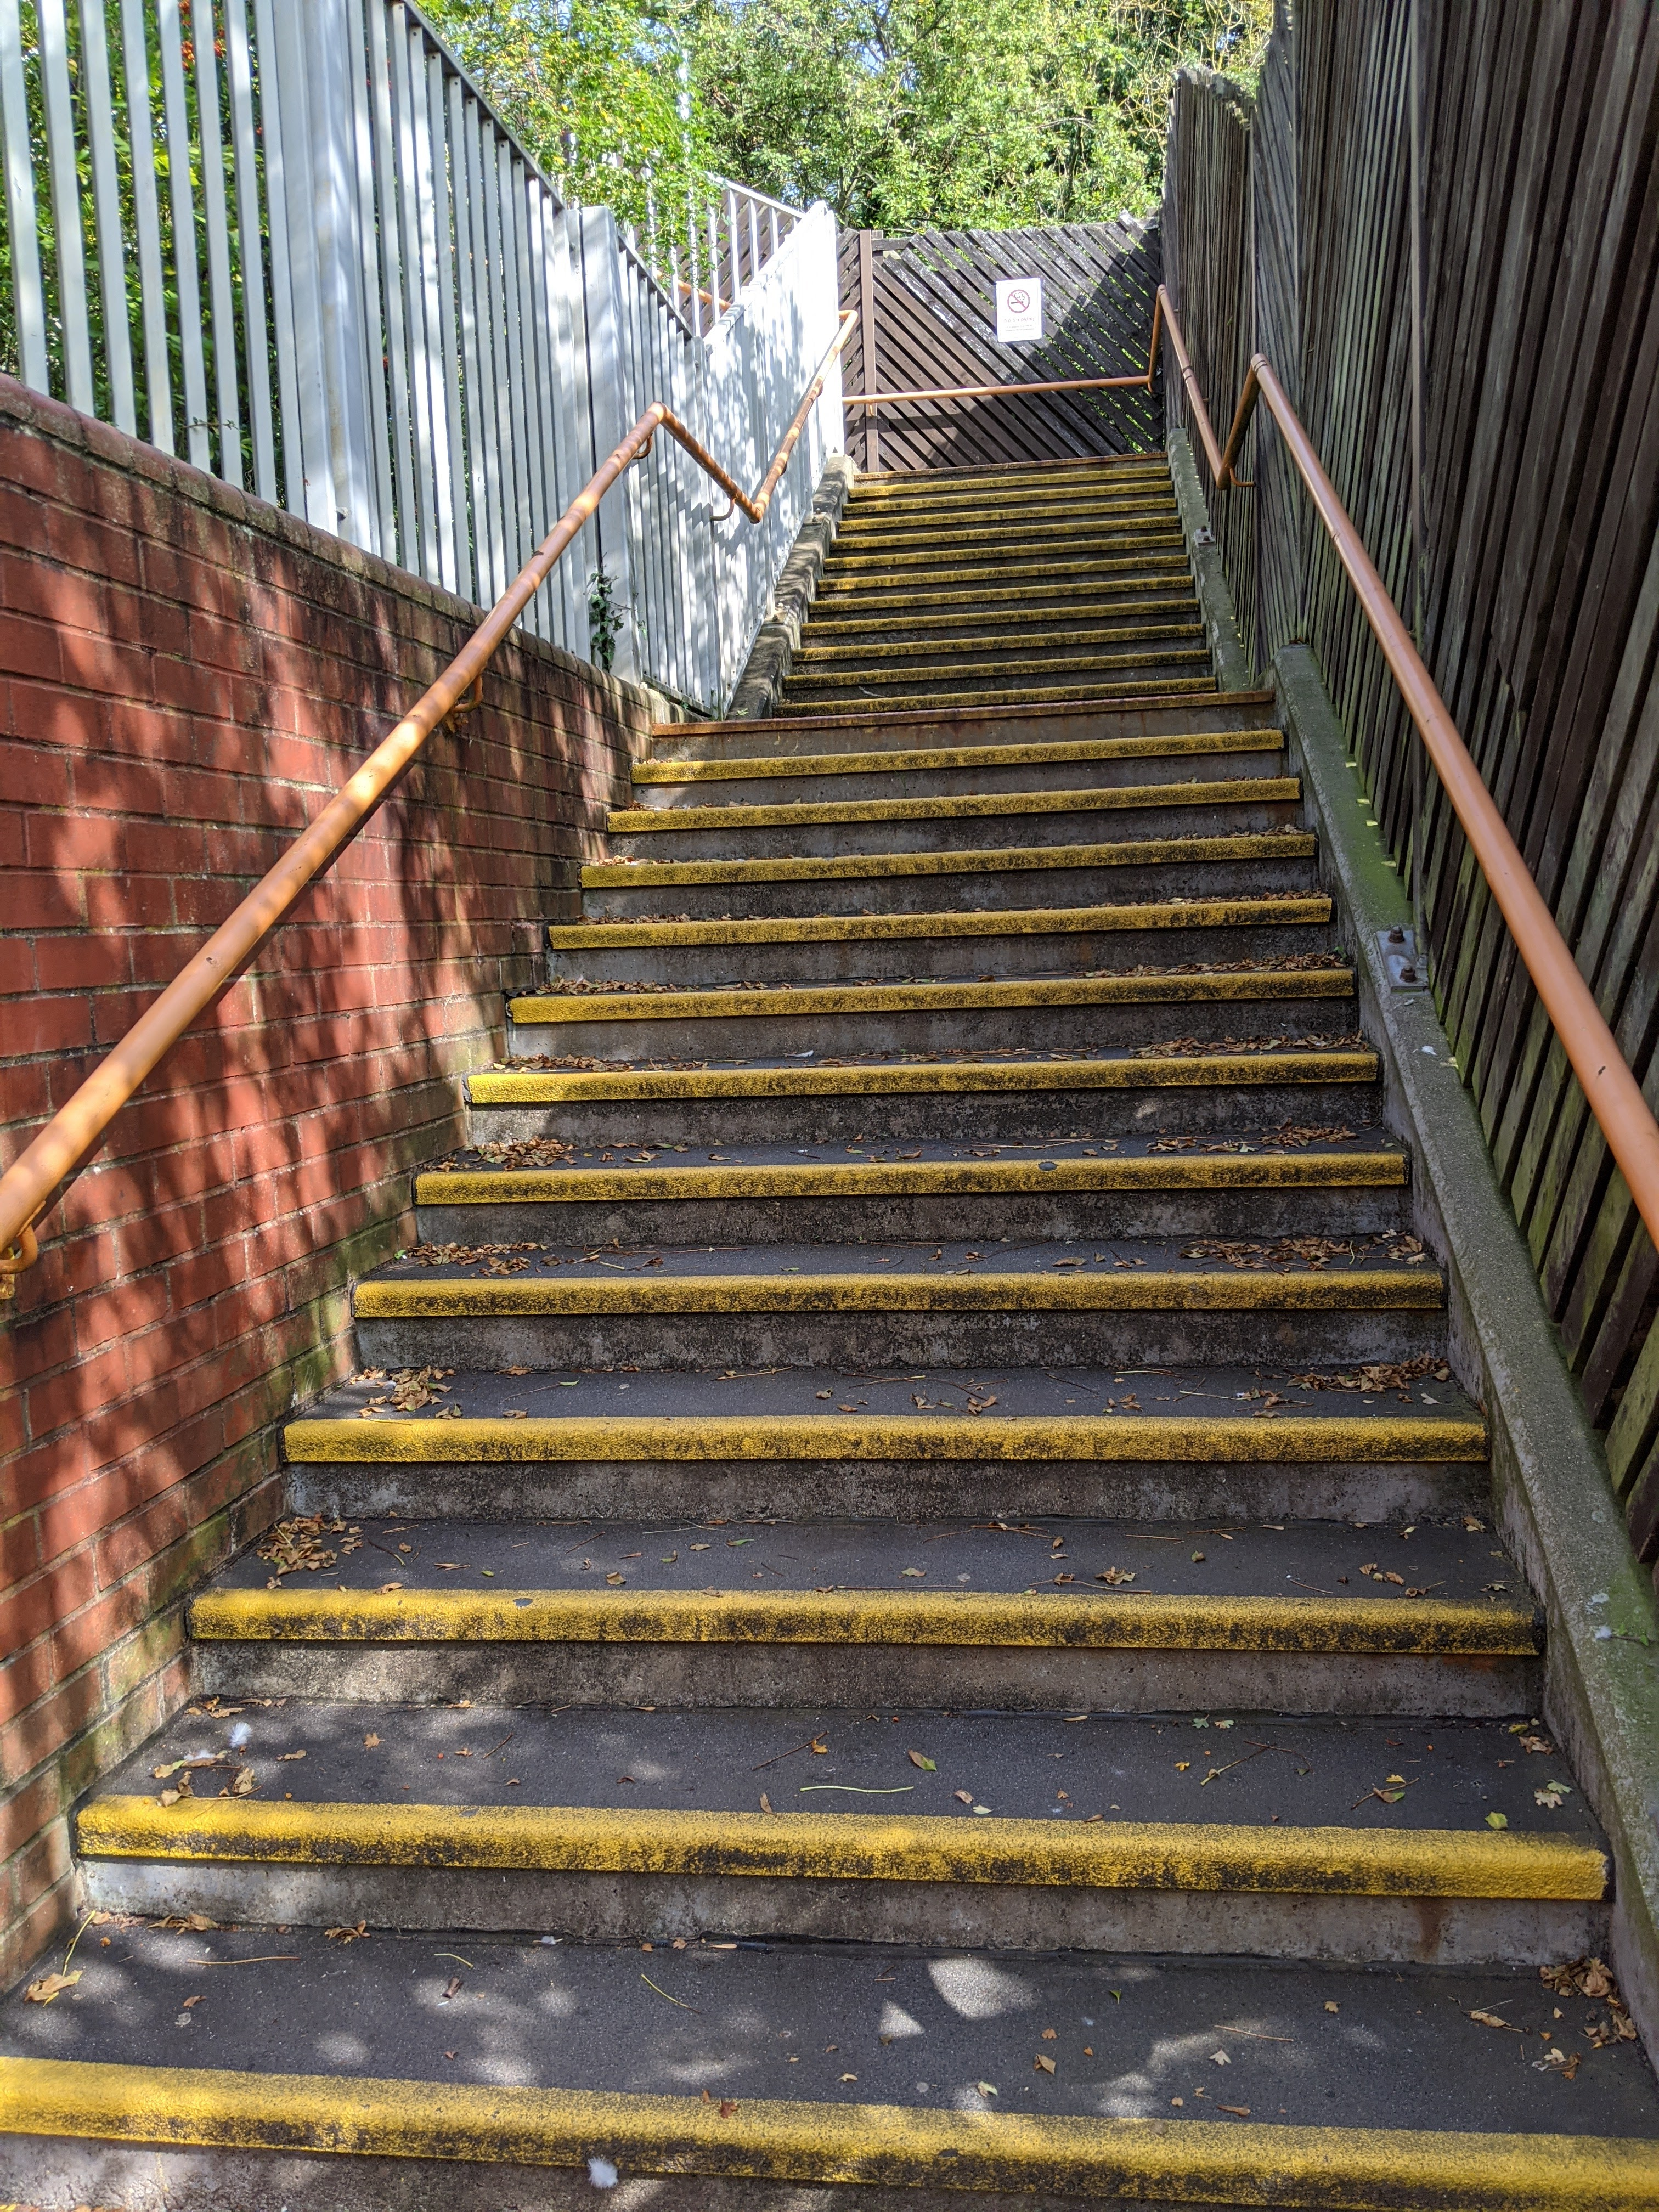 The stairs that the underpass leads to.